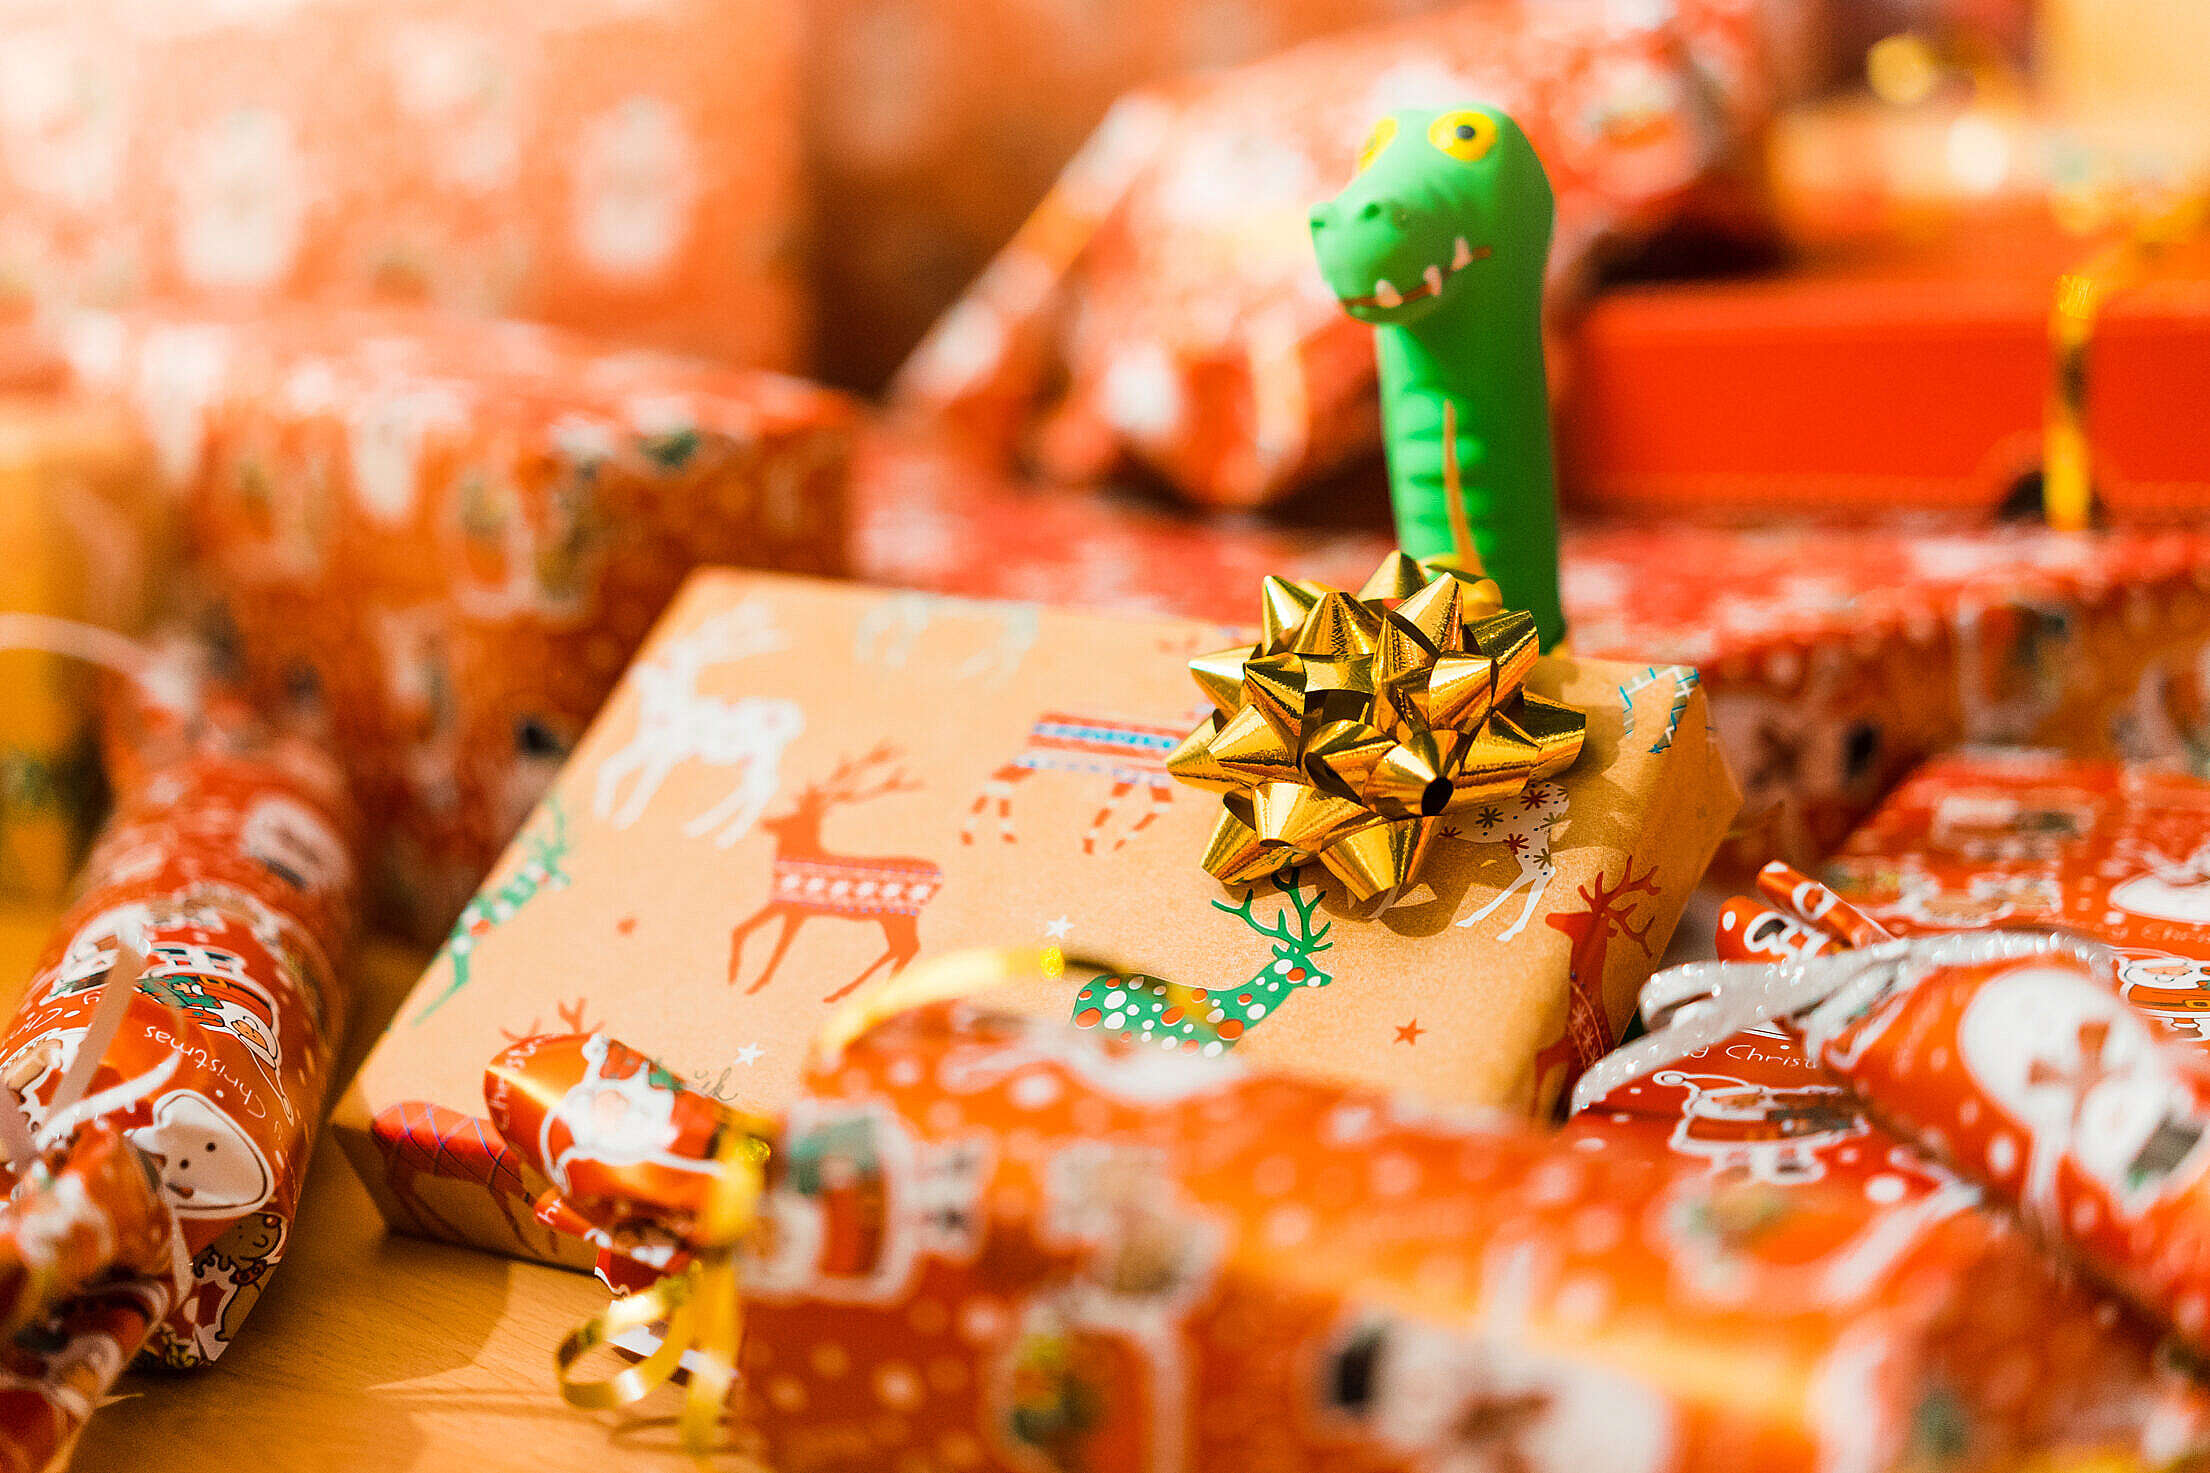 Toy for Dogs and Christmas Gifts Free Stock Photo